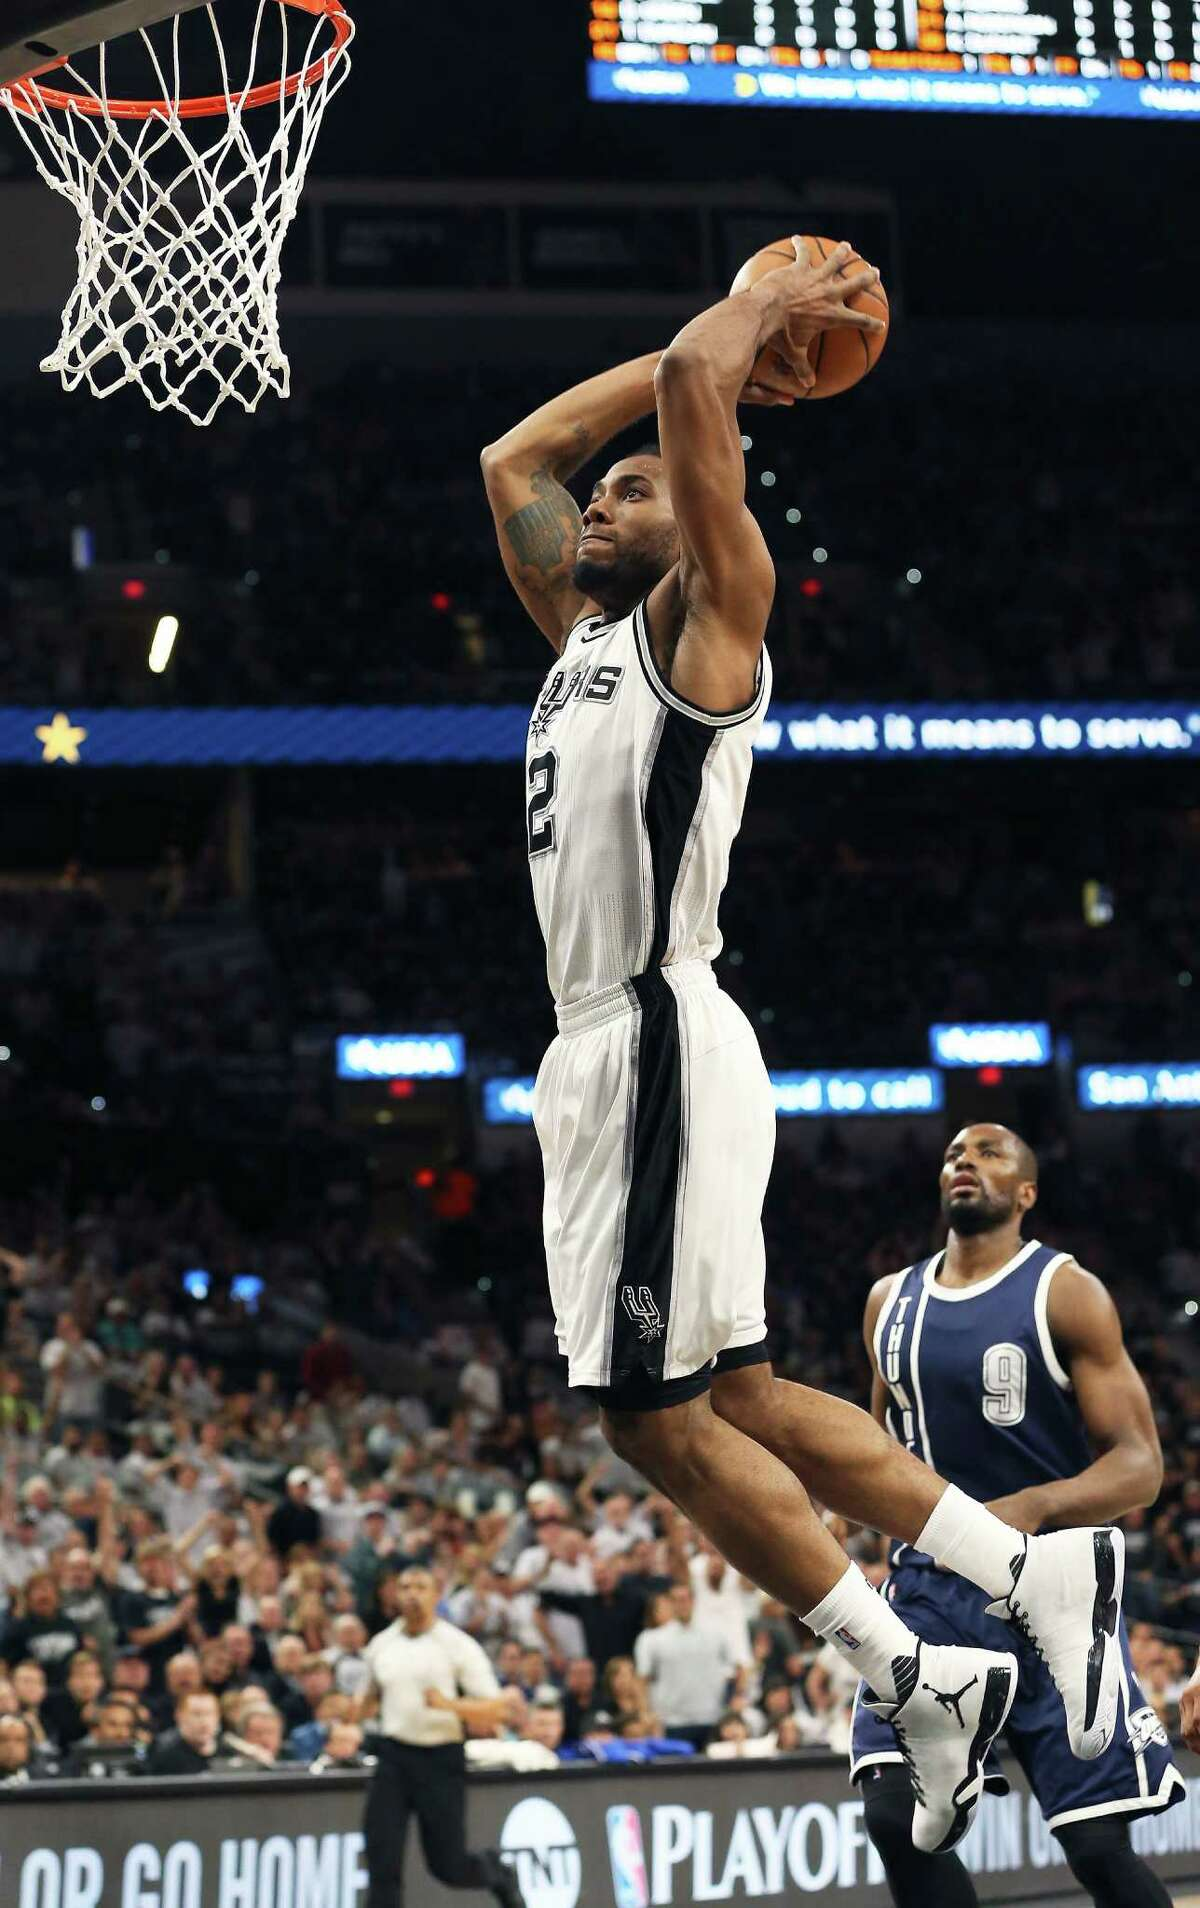 Kawhi Leonard goes up for a two handed slam on a break away as the Spurs host the Thunder in game 1 of second round NBA playoff action at the AT&T Center on April 230, 2016.